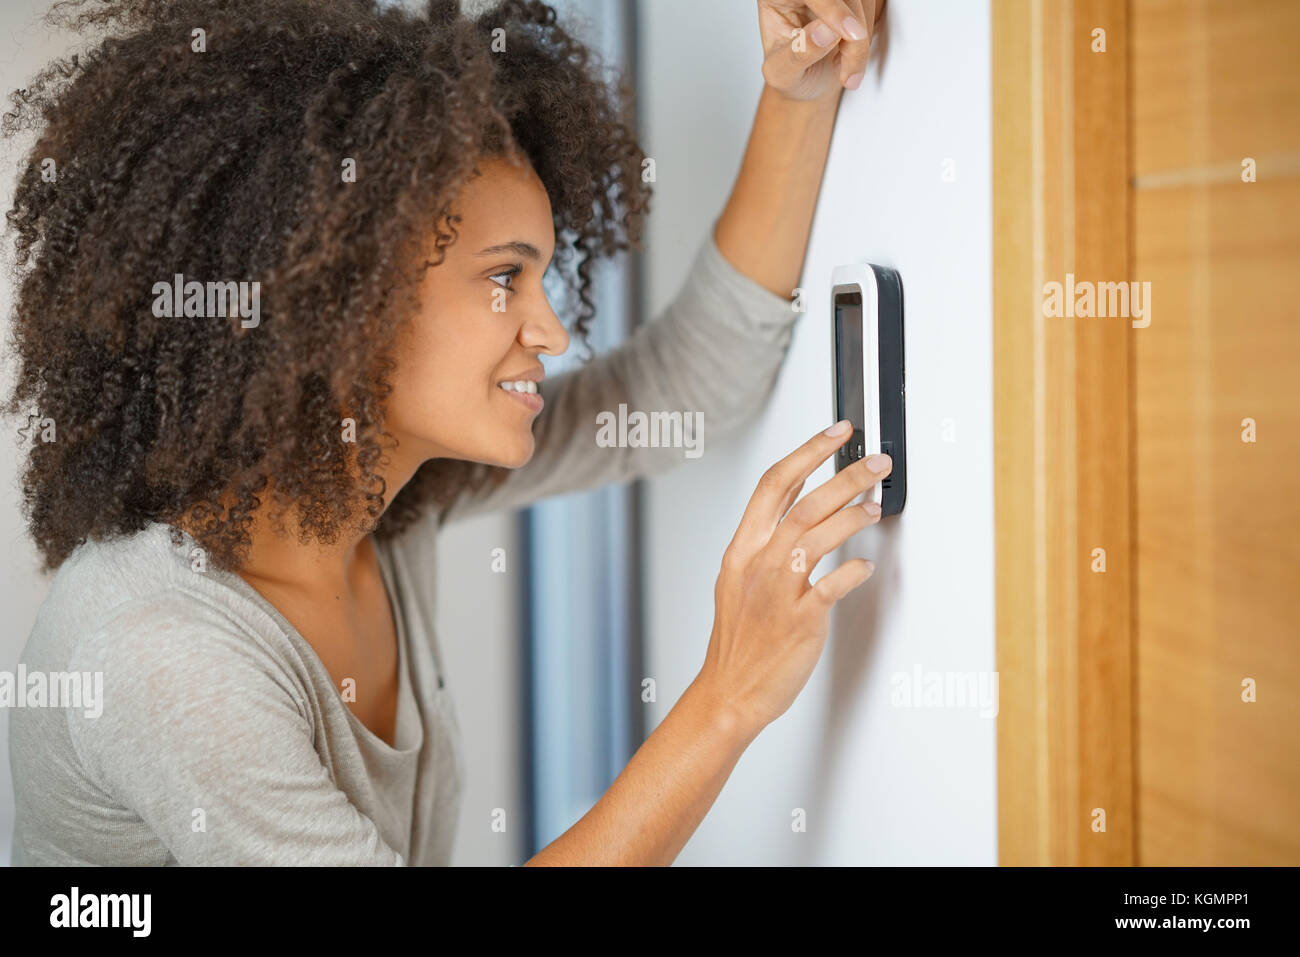 Woman controlling home appliances with central electronic device - Stock Image